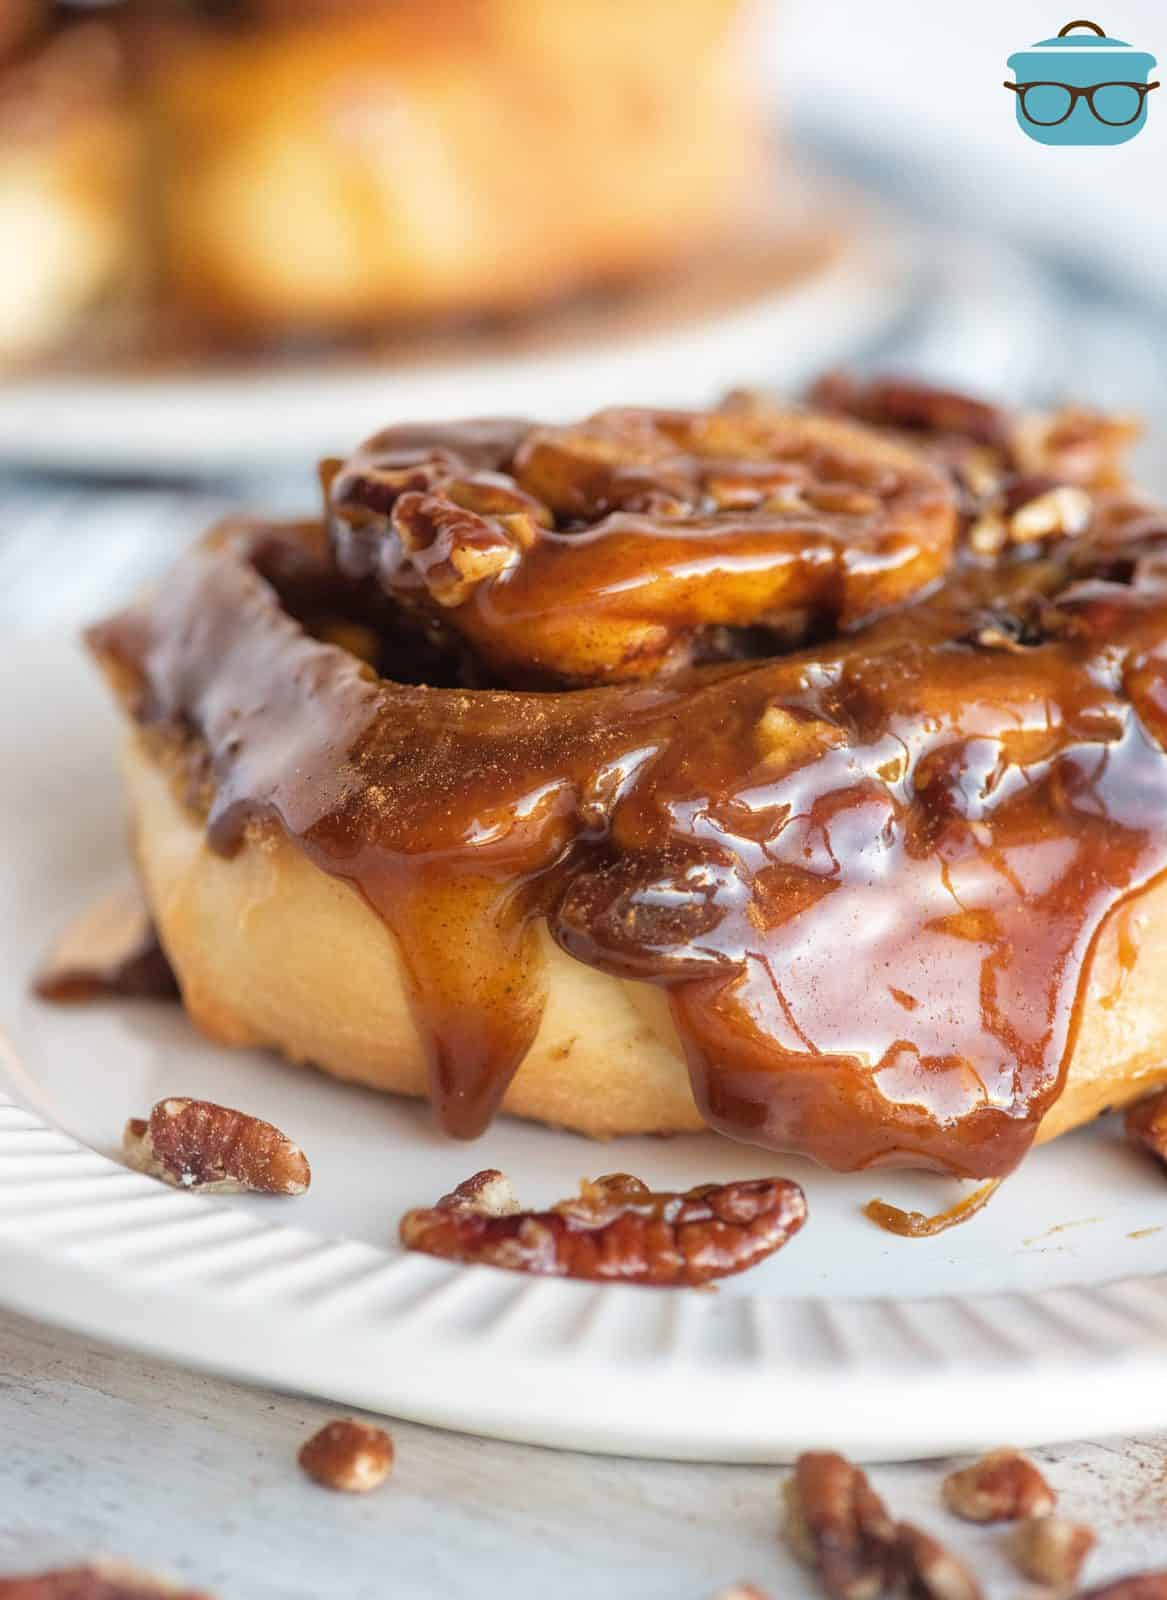 Homemade Sticky Bun with dripping sauce on white plate.